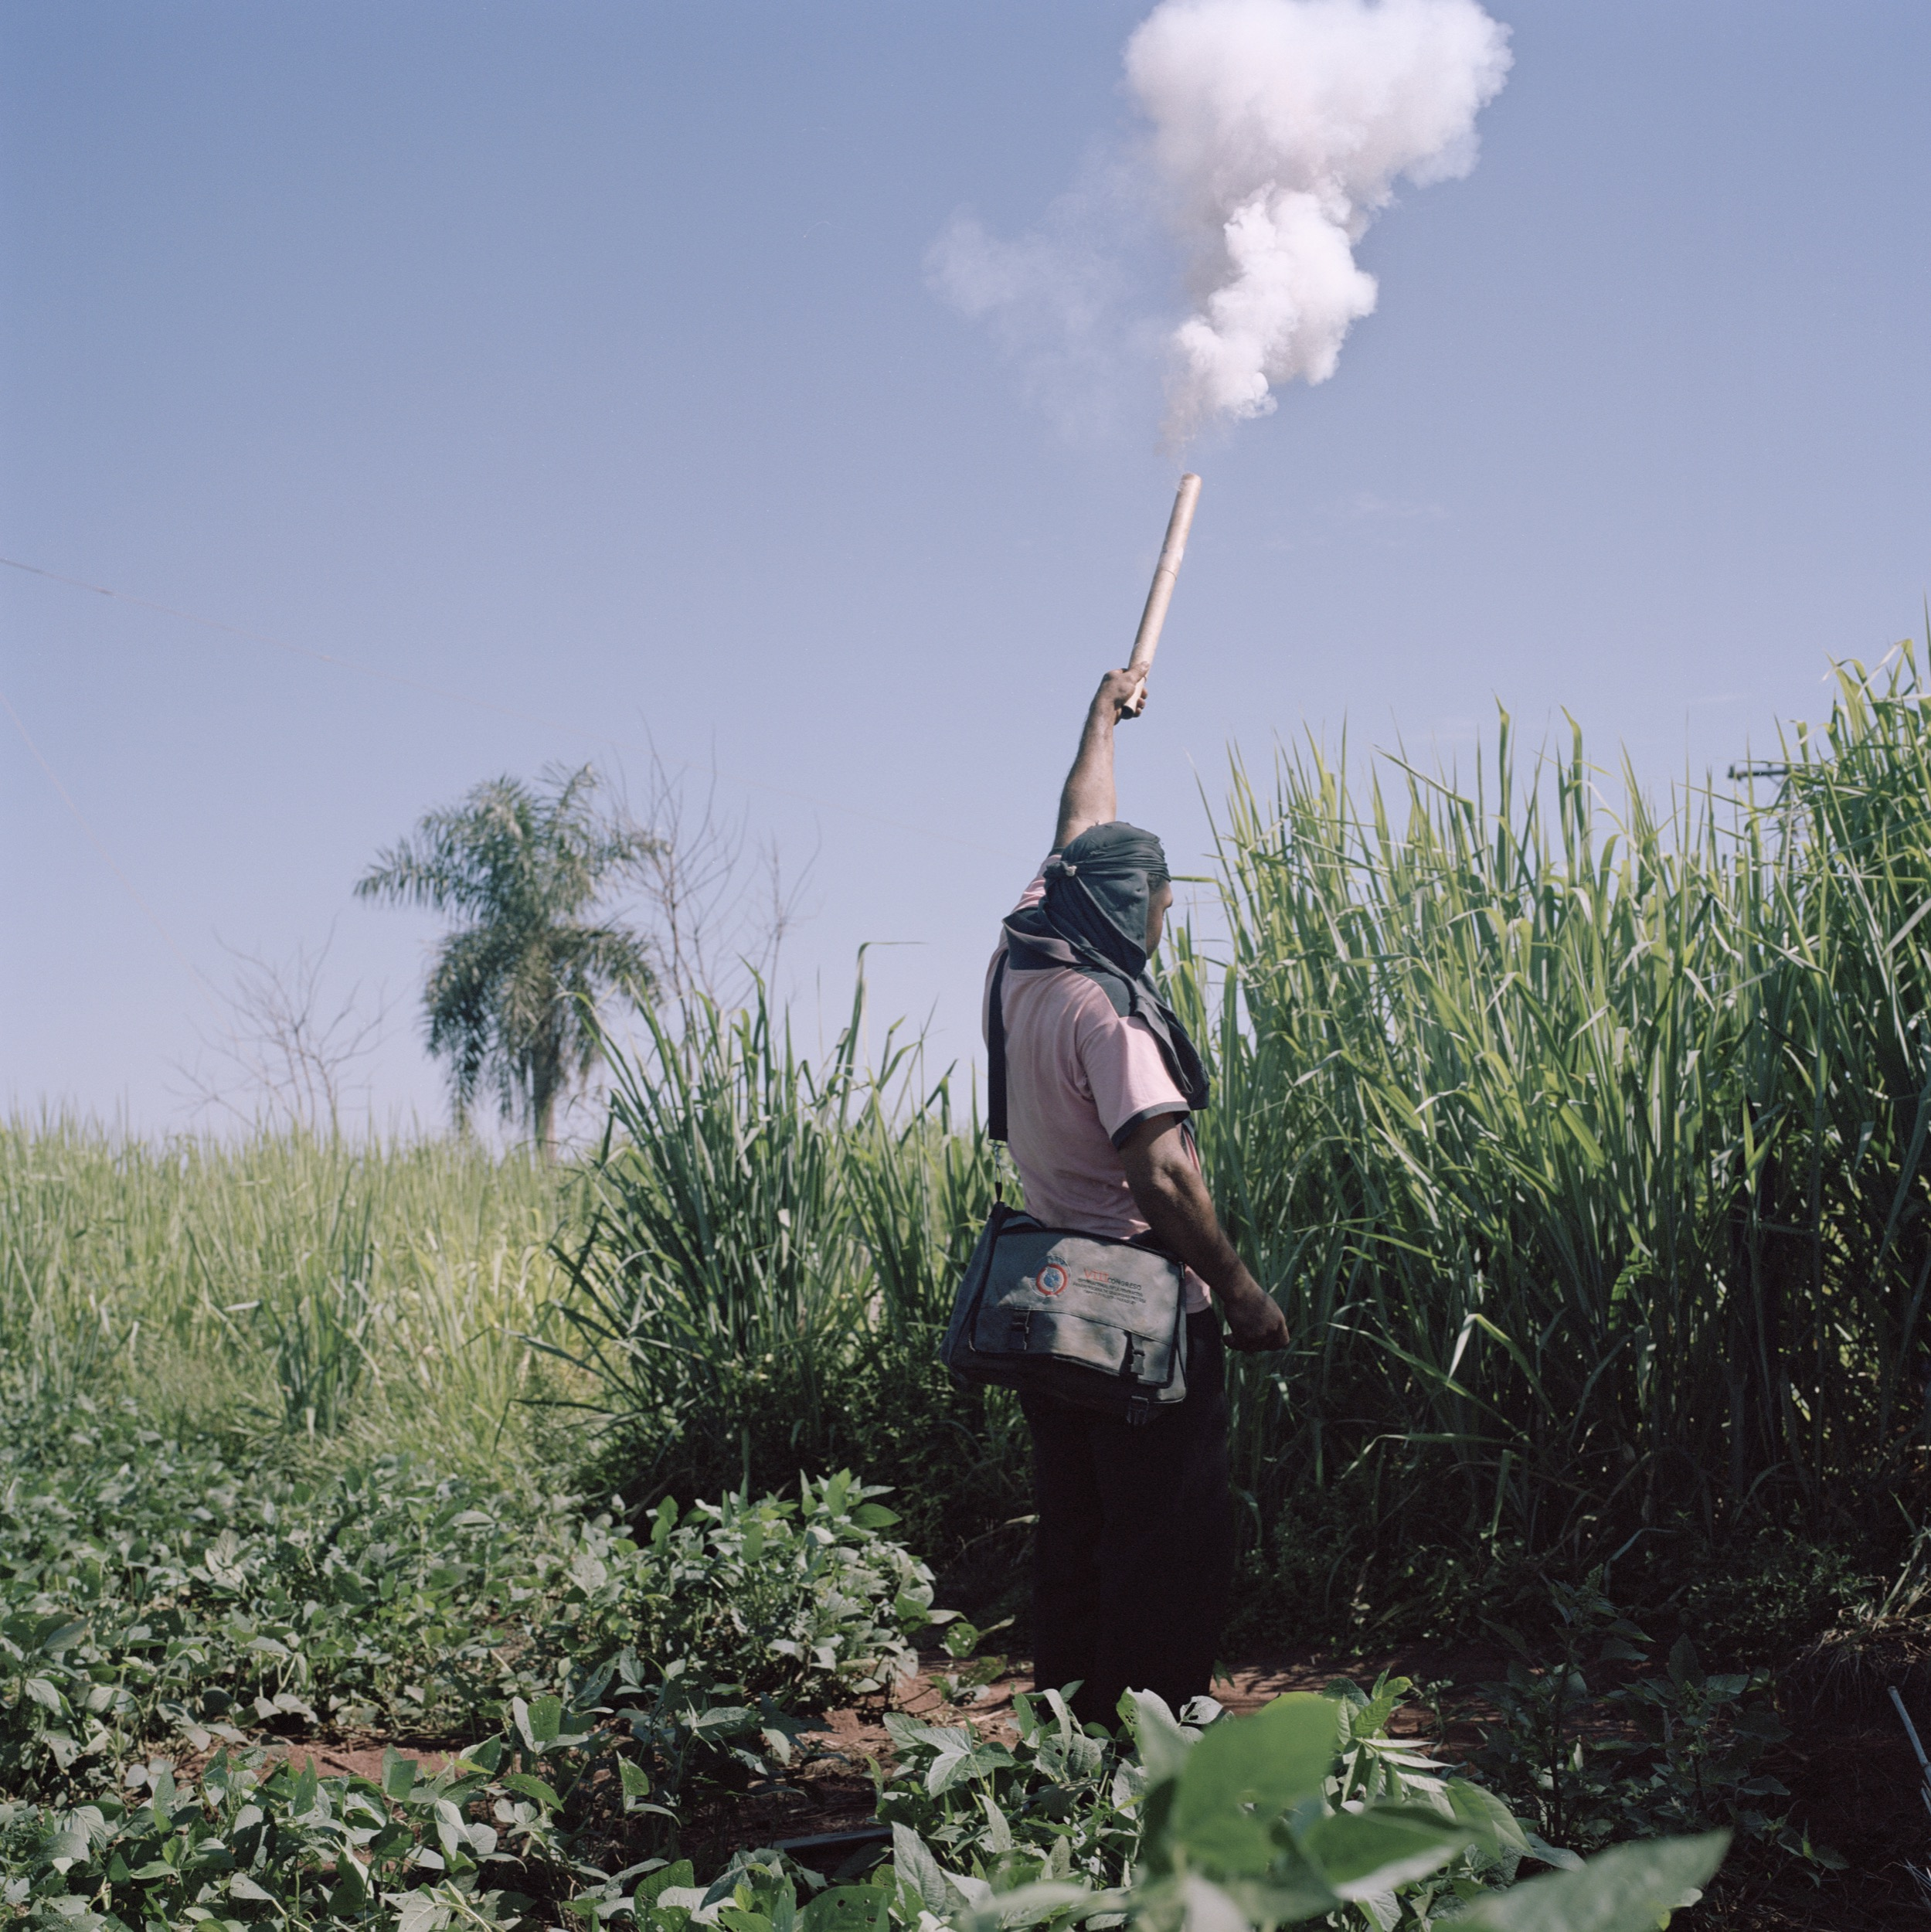 A peasant shots a firecracker to alert the population that a fumigation is happening near the community. Police protected the fumigation and heavily repressed the peasants, leaving several injured.